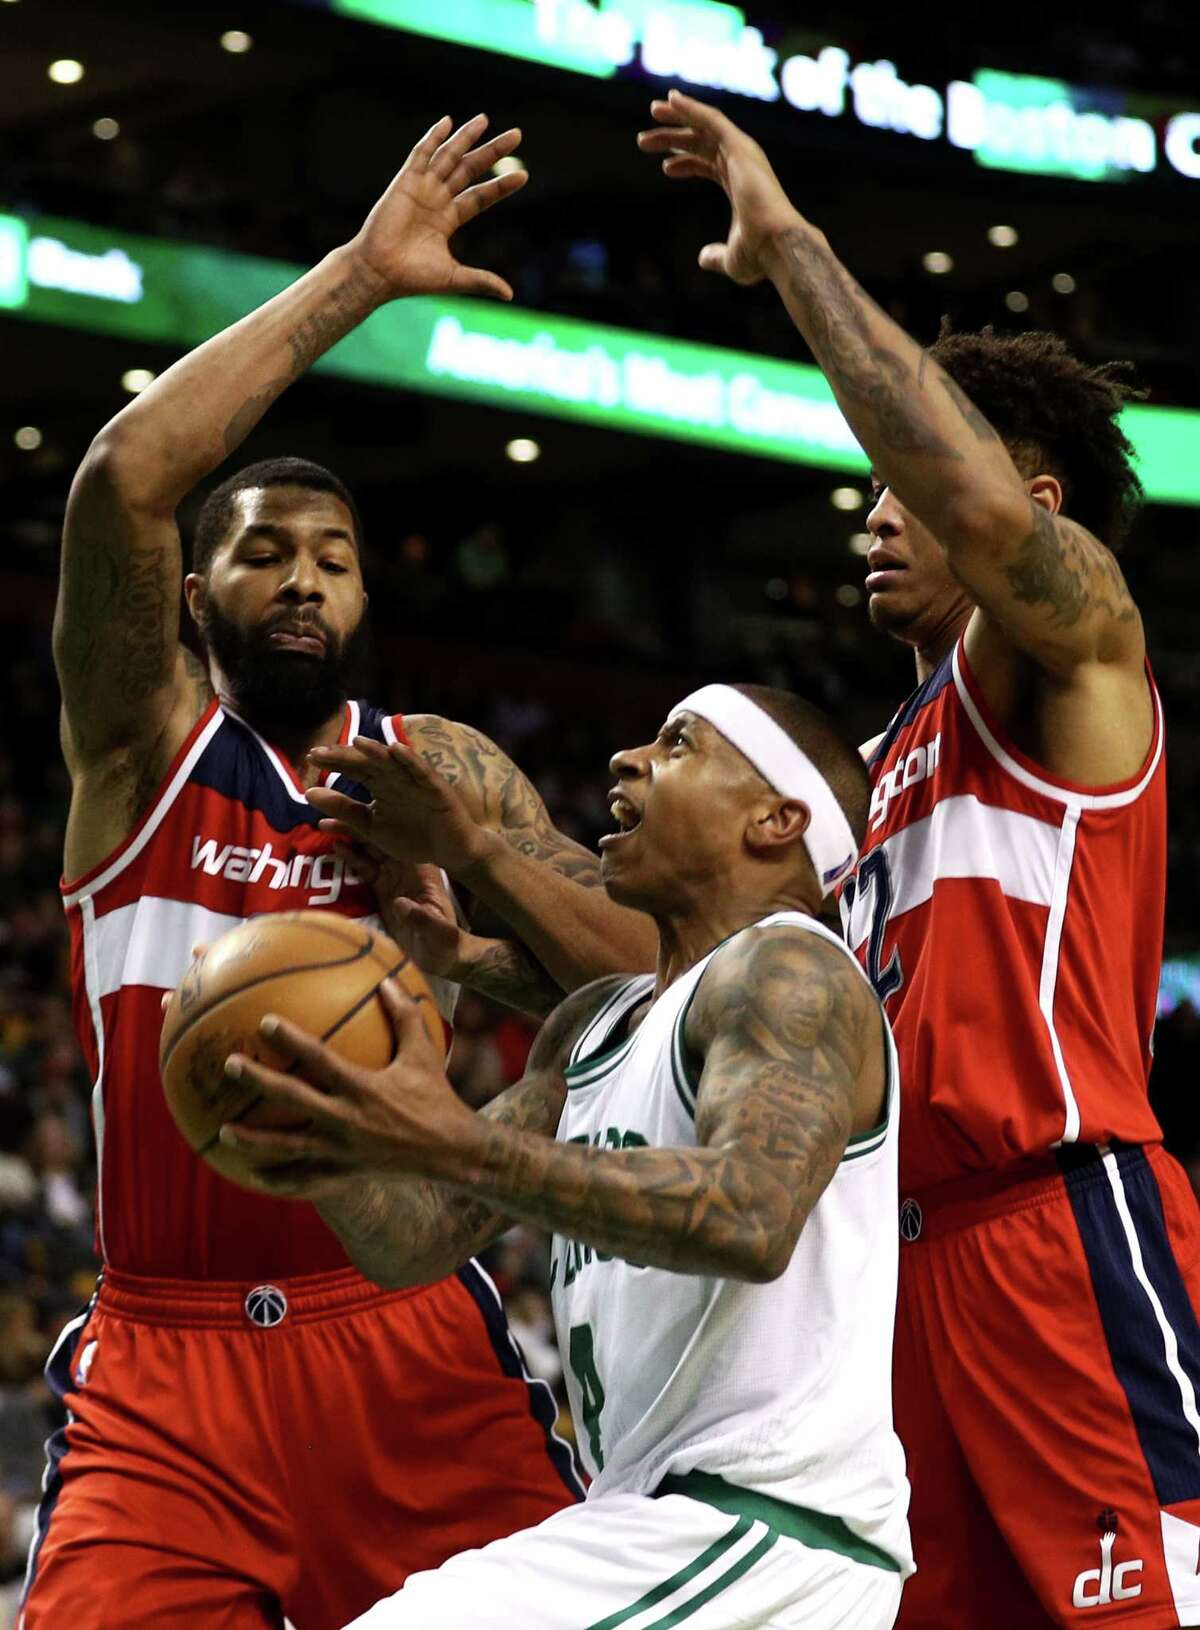 BOSTON, MA - MARCH 20: Isaiah Thomas #4 of the Boston Celtics takes a shot against Markieff Morris #5 of the Washington Wizards and Kelly Oubre Jr. #12 during the fourth quarter at TD Garden on March 20, 2017 in Boston, Massachusetts. The Celtics defeat the Wizards 110-102. NOTE TO USER: User expressly acknowledges and agrees that, by downloading and or using this Photograph, user is consenting to the terms and conditions of the Getty Images License Agreement. (Photo by Maddie Meyer/Getty Images) ORG XMIT: 662356973